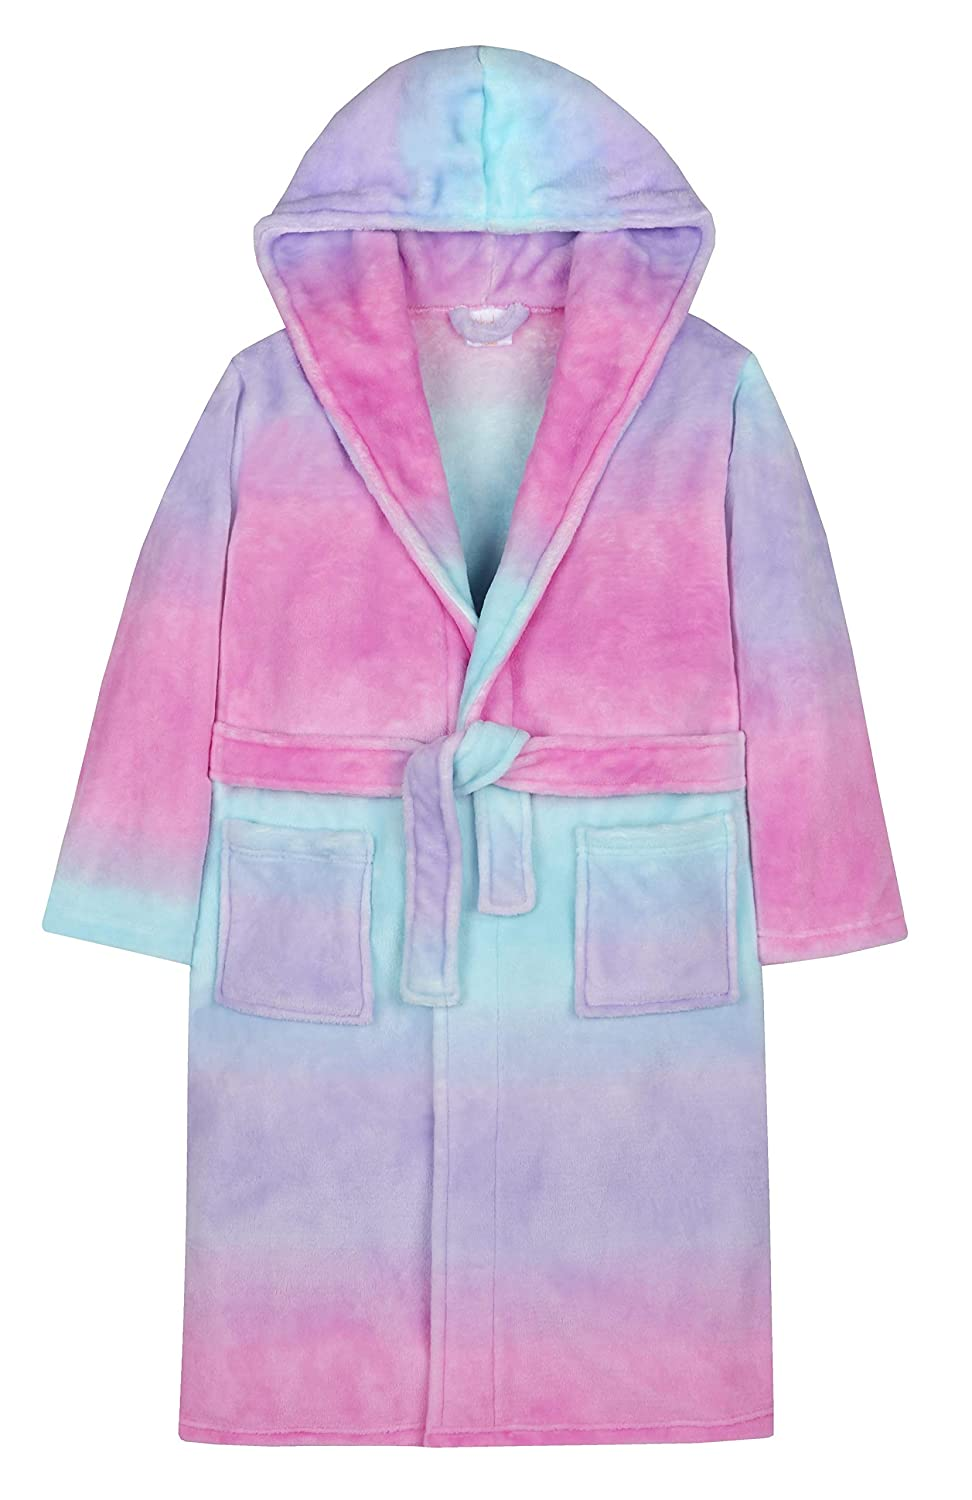 4Kidz Girls Rainbow Gradient Dressing Gown